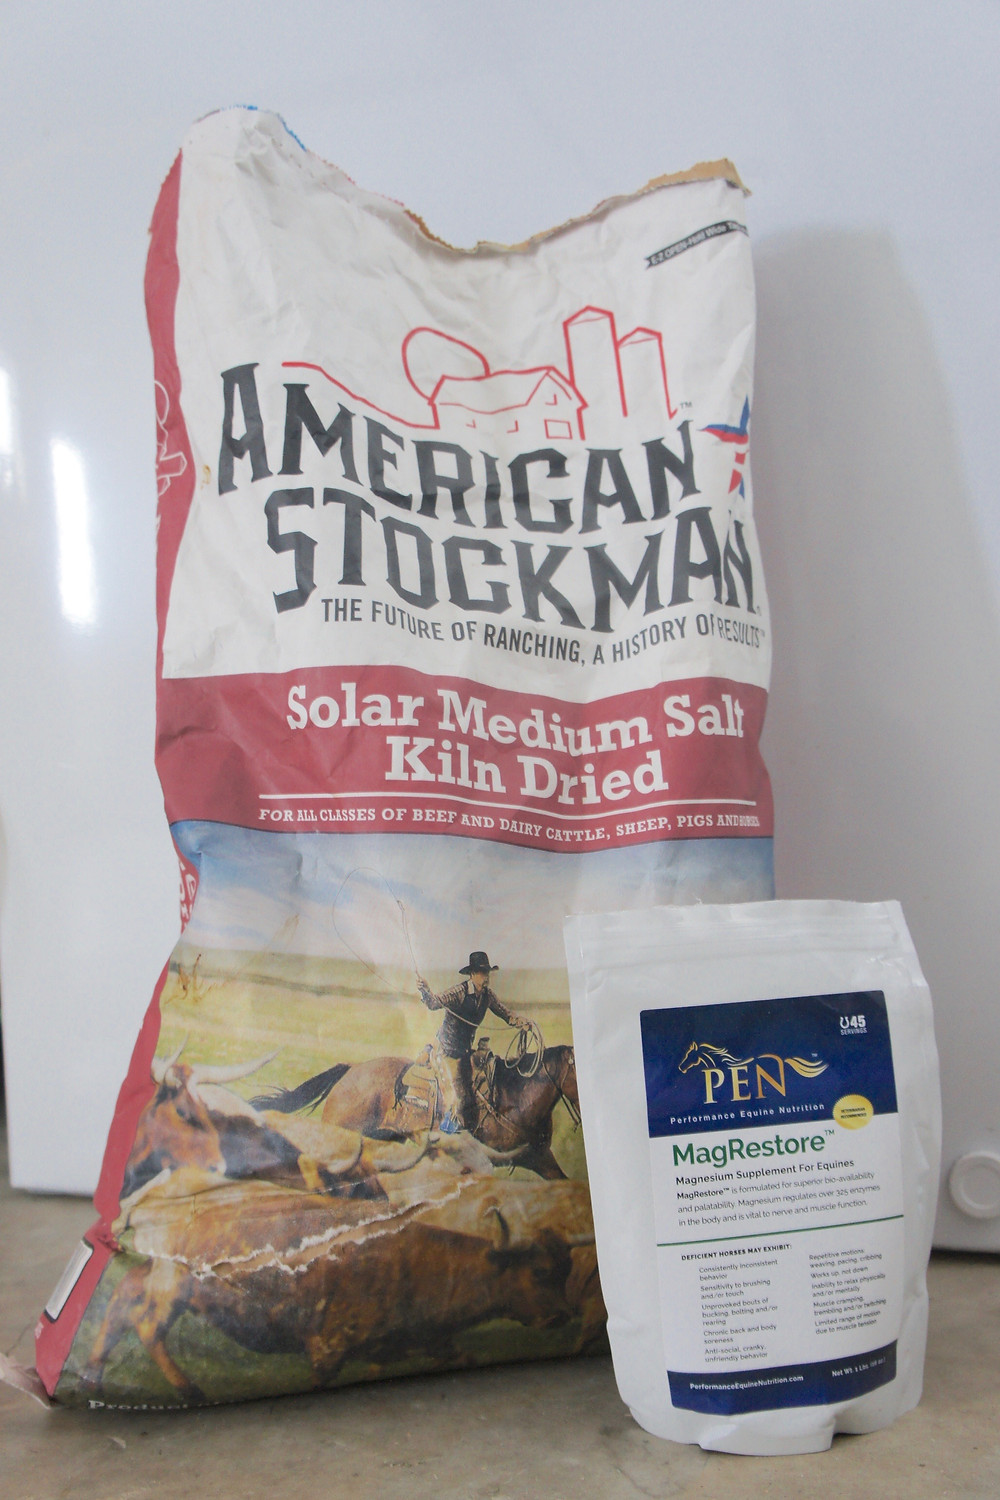 American Stockman Salt and Mag Restore